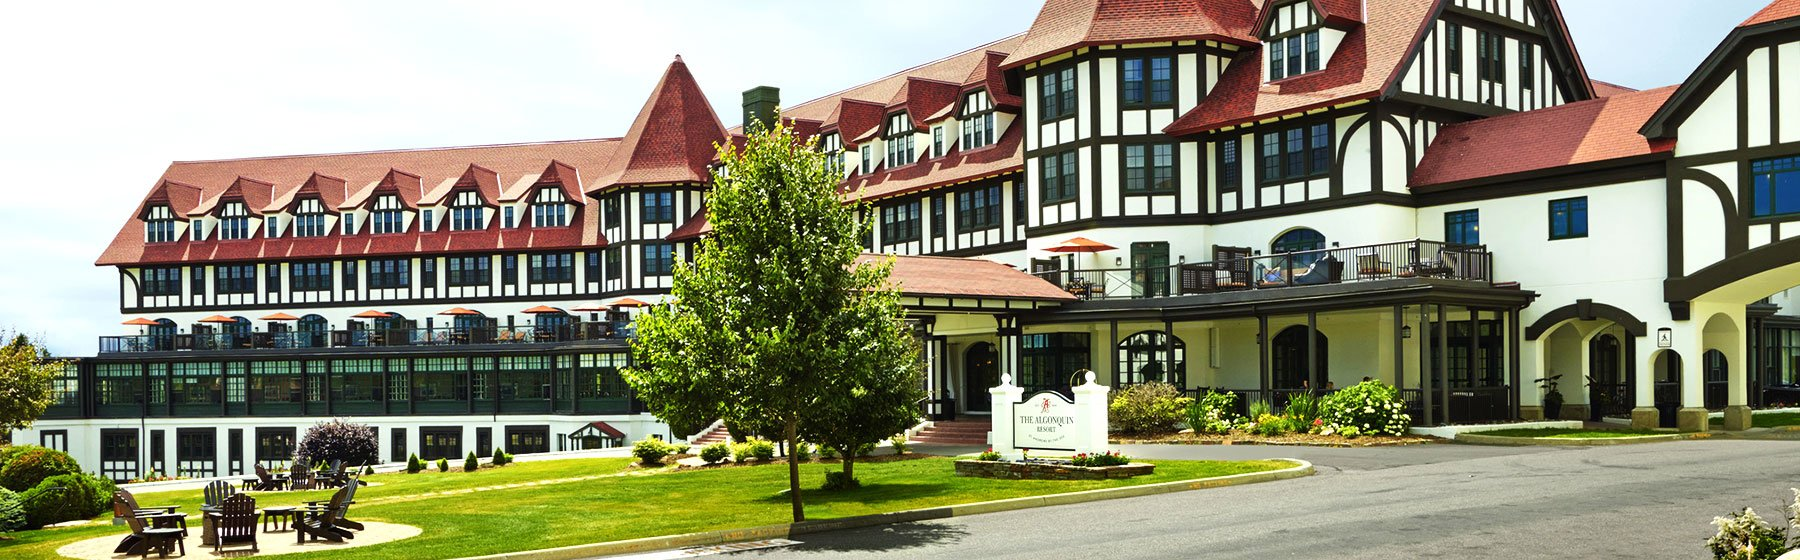 The resort Locations Algonquinresort, Andrews By The Sea